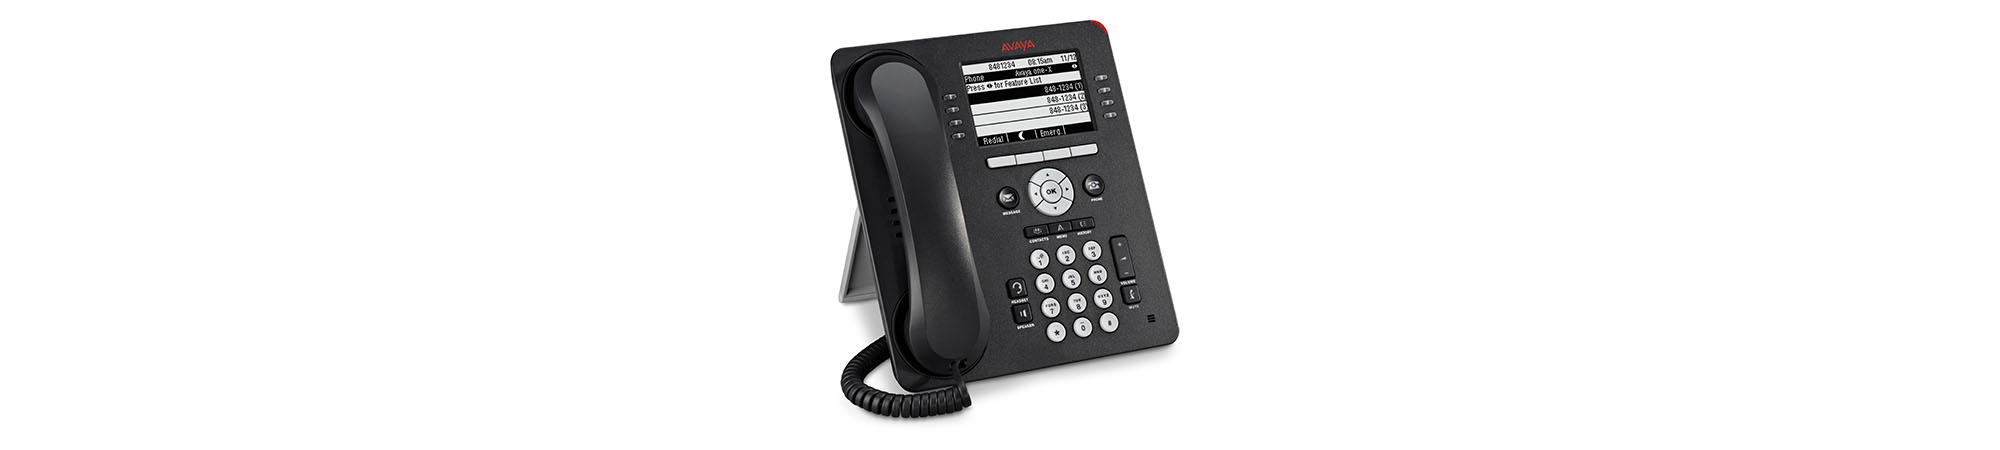 Avaya 9608 user guide